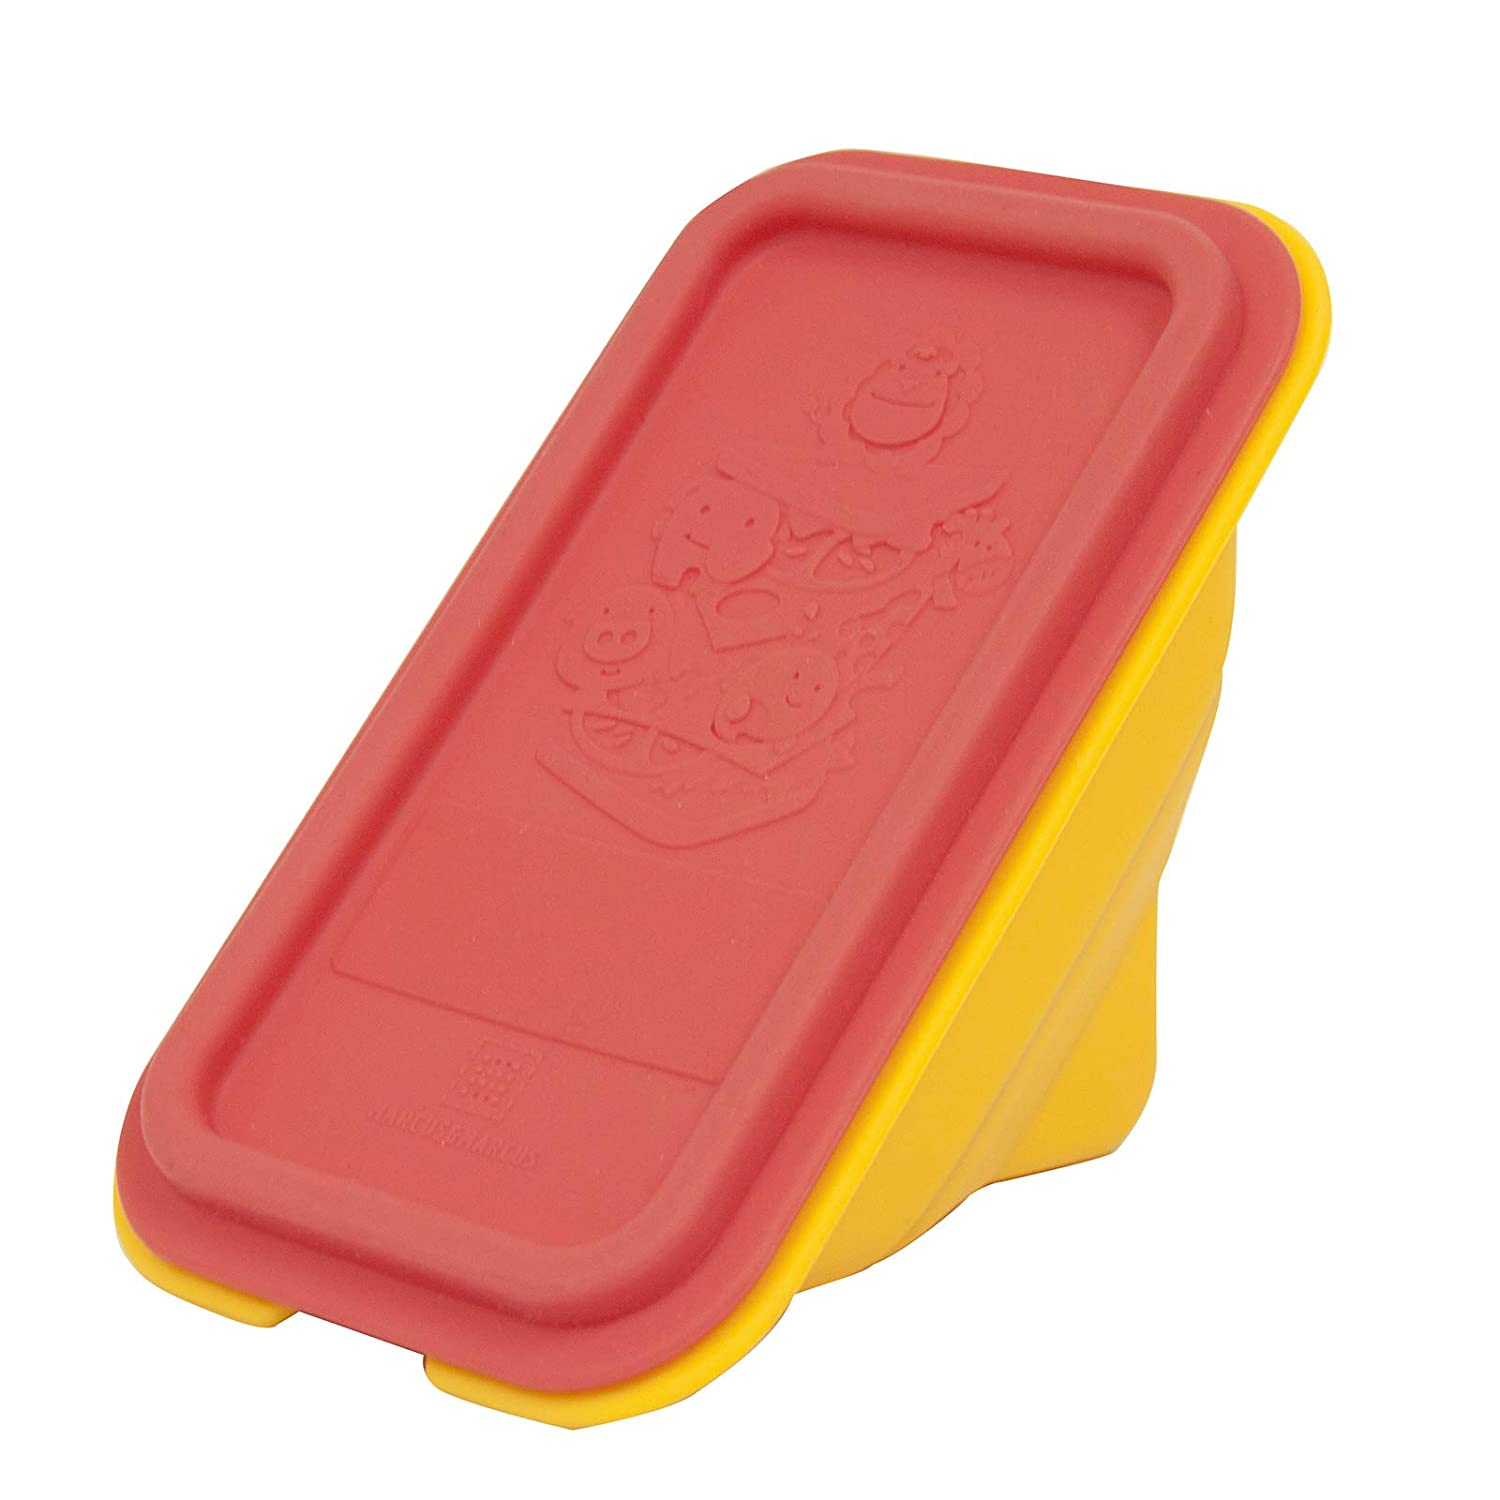 Collapsible Silicone Sandwich Container with Lid, Wedge Shape, Red, by Marcus & Marcus